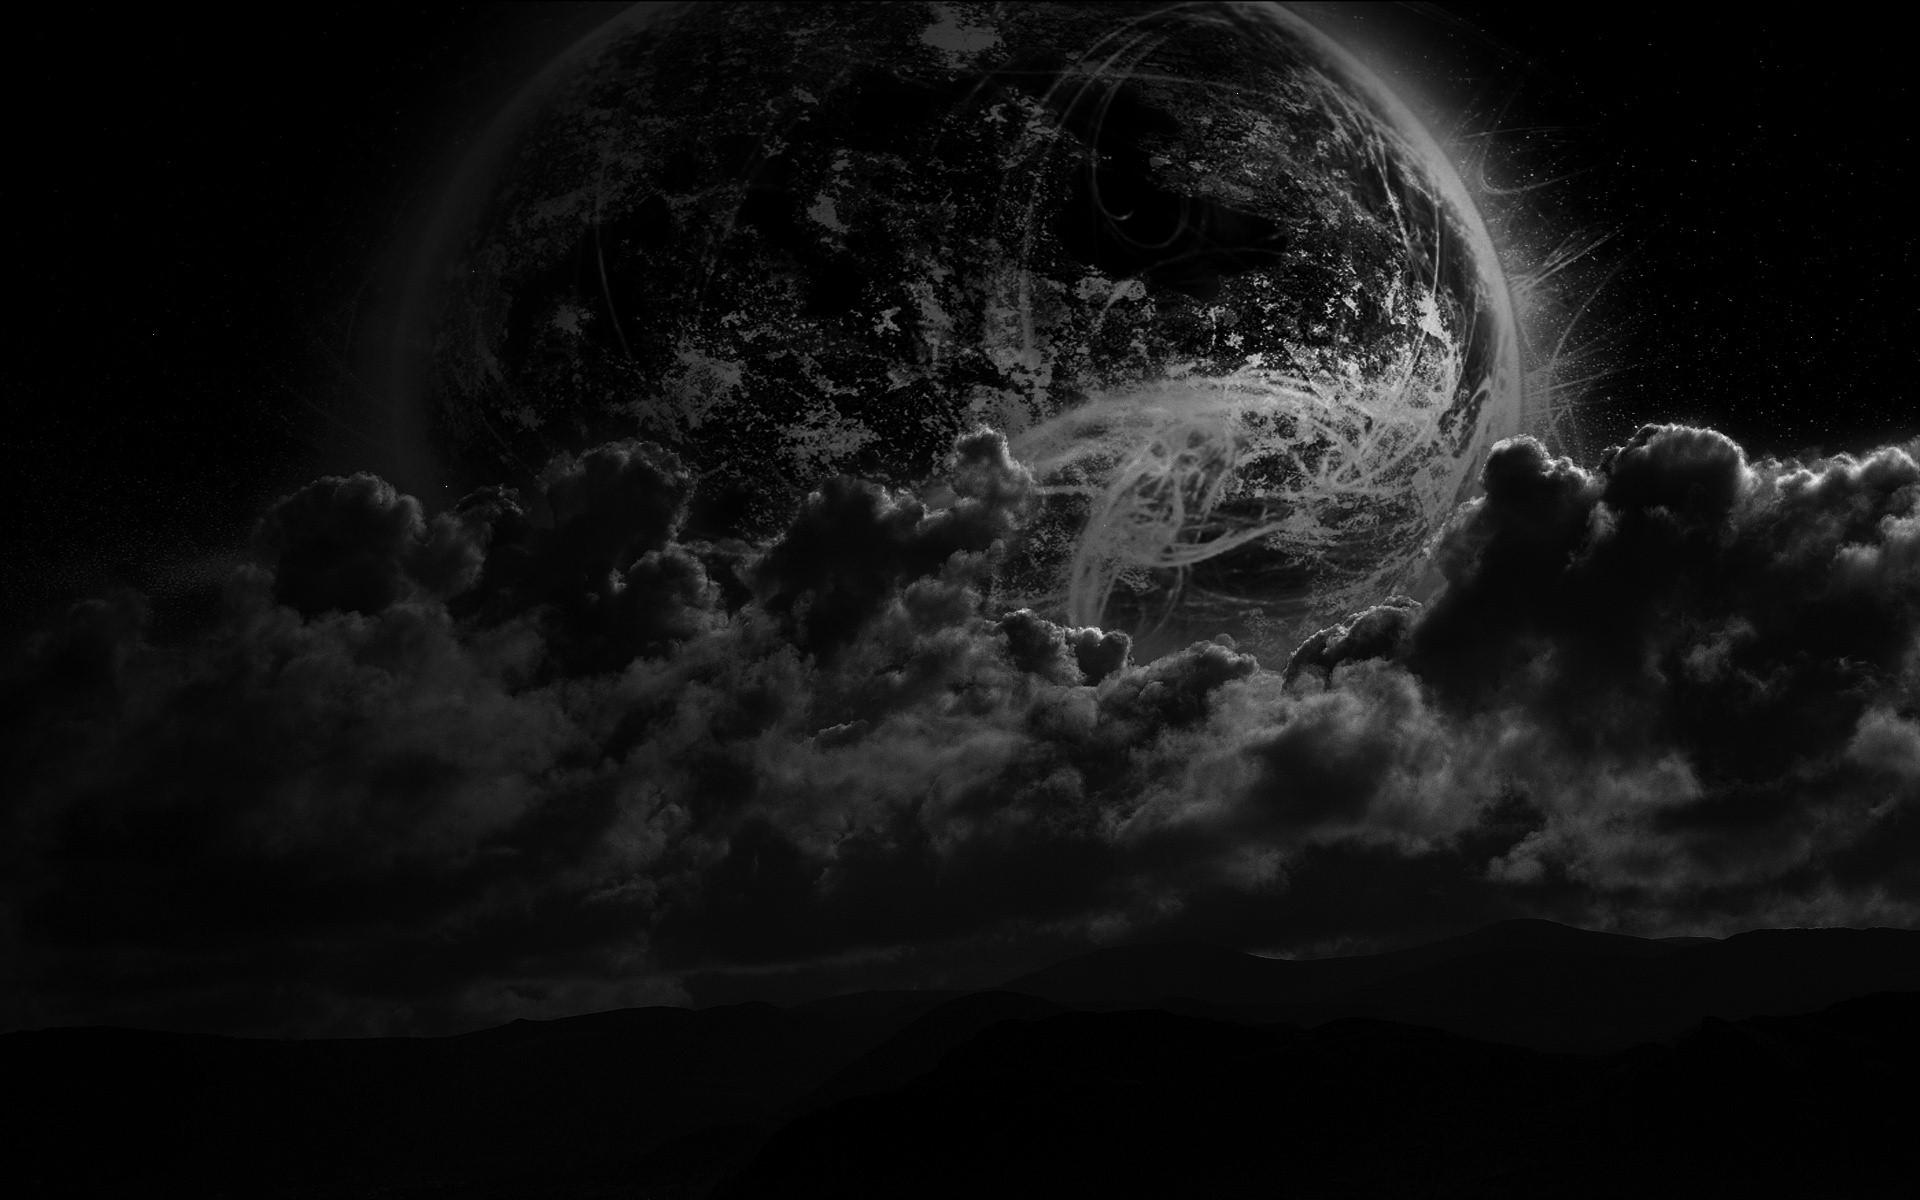 Planet in Clouds and Darkness 1579.16 Kb